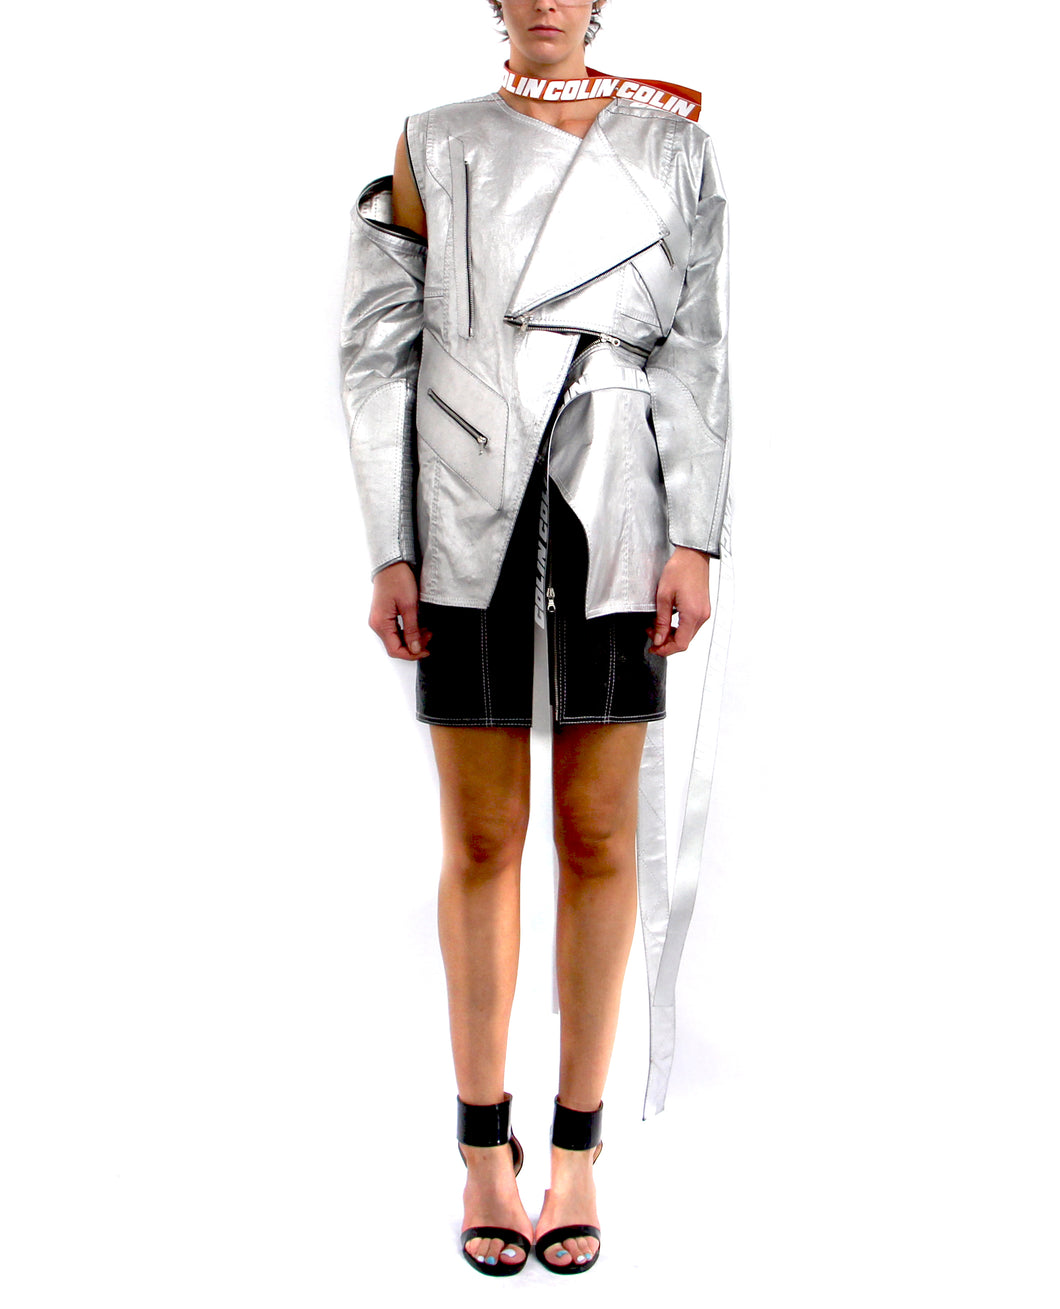 Collapsed Distressed Silver Jacket